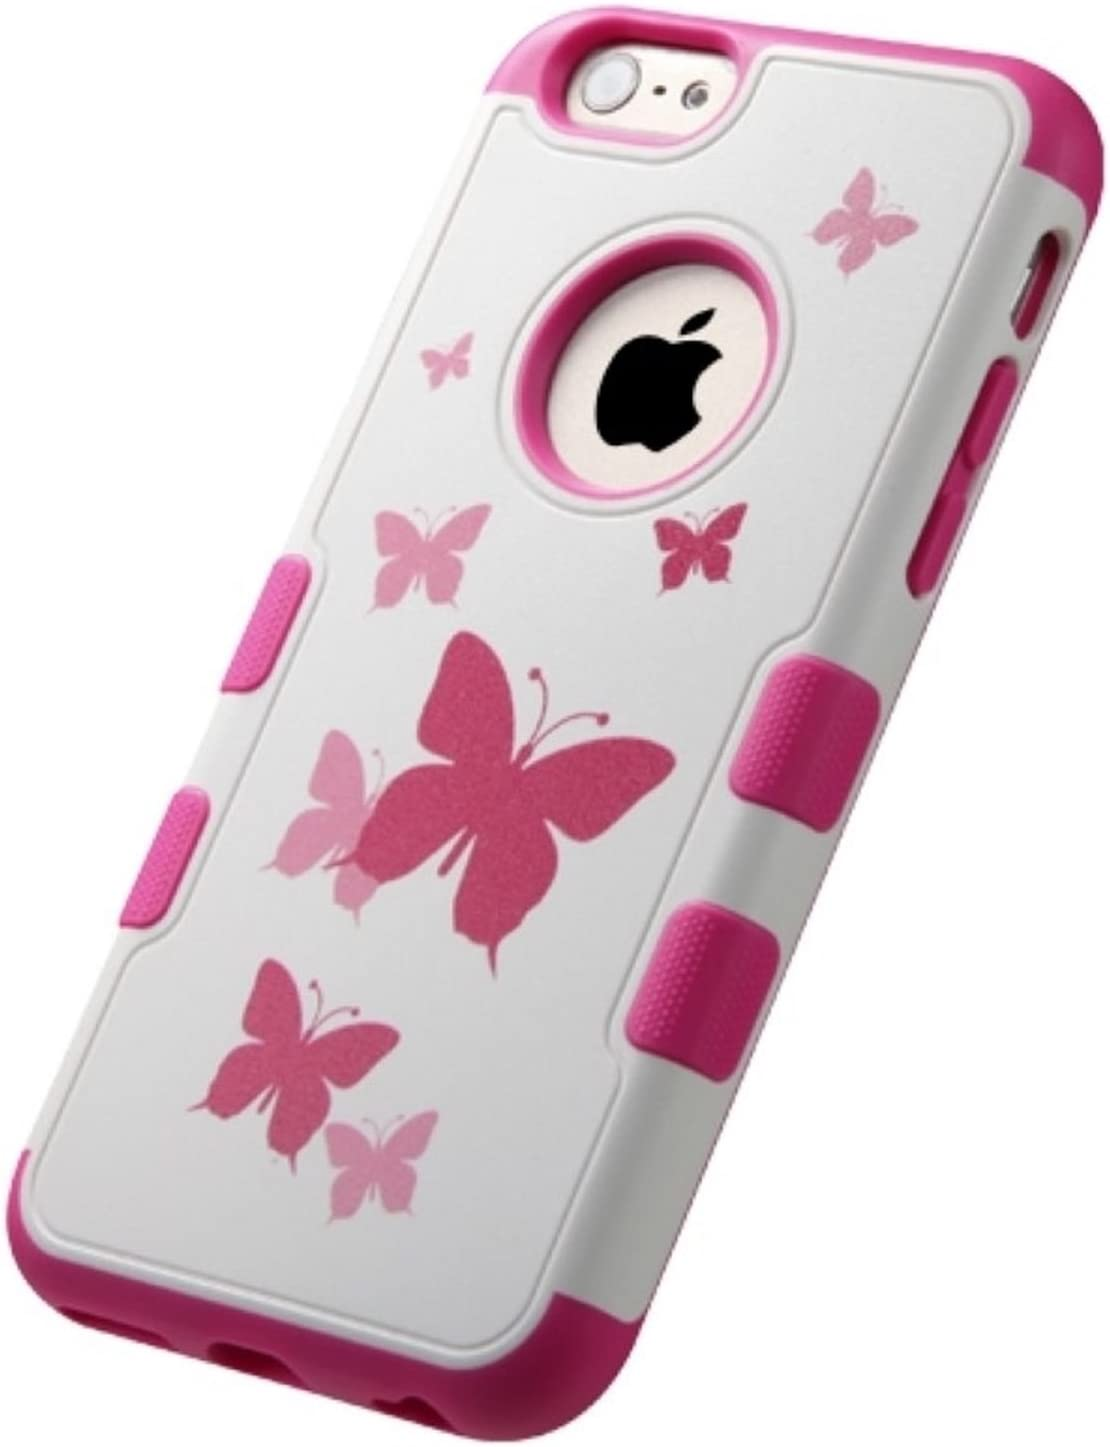 Asmyna TUFF Merge Hybrid Protector Cover for iPhone 6 - Retail Packaging - Butterfly Dancing/Hot Pink